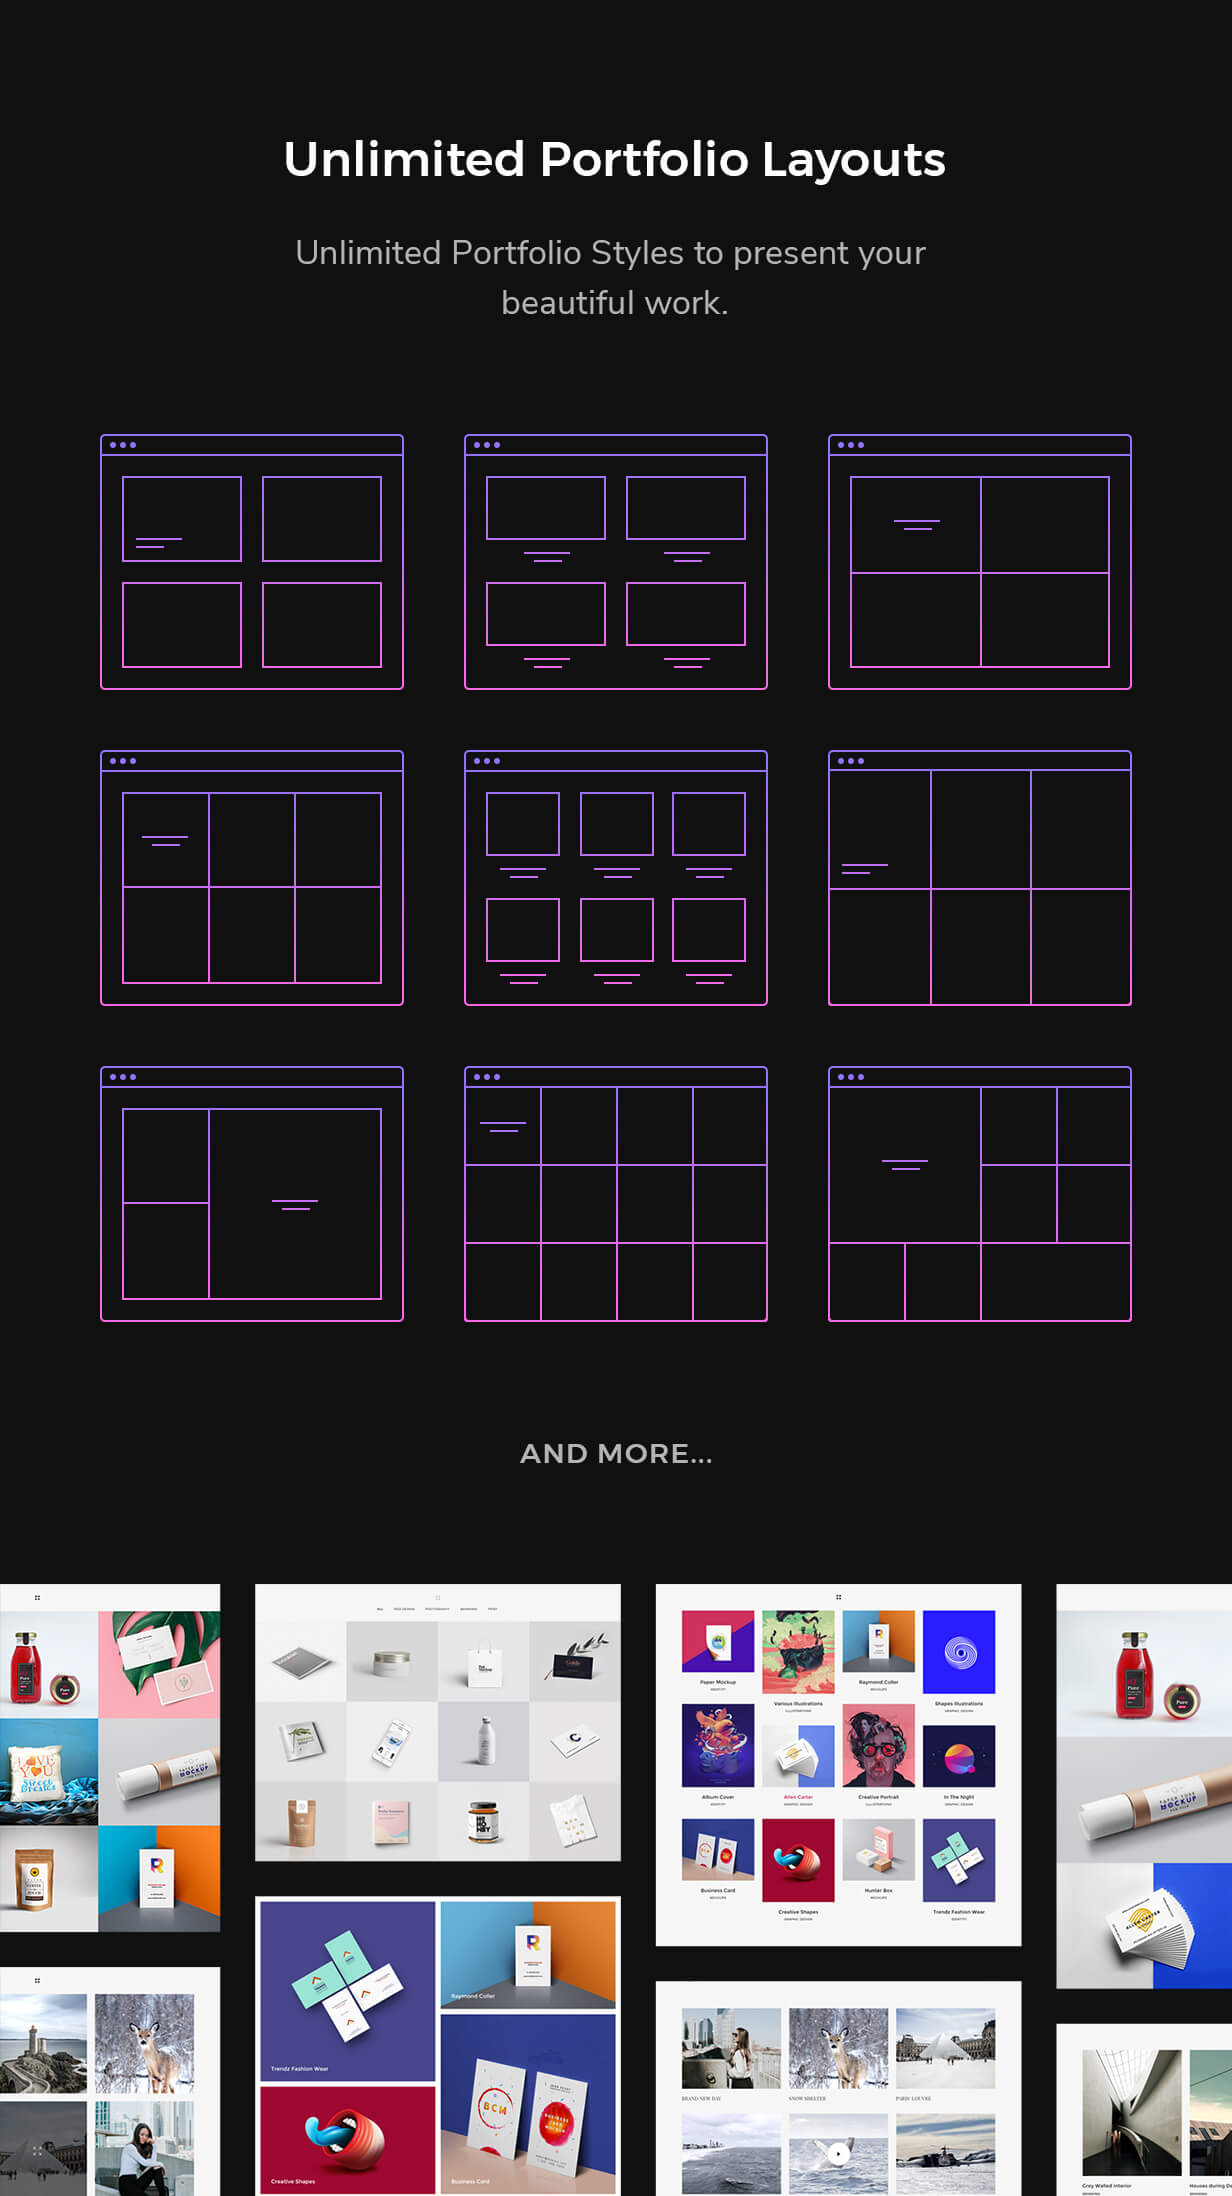 Unlimited portfolio layouts